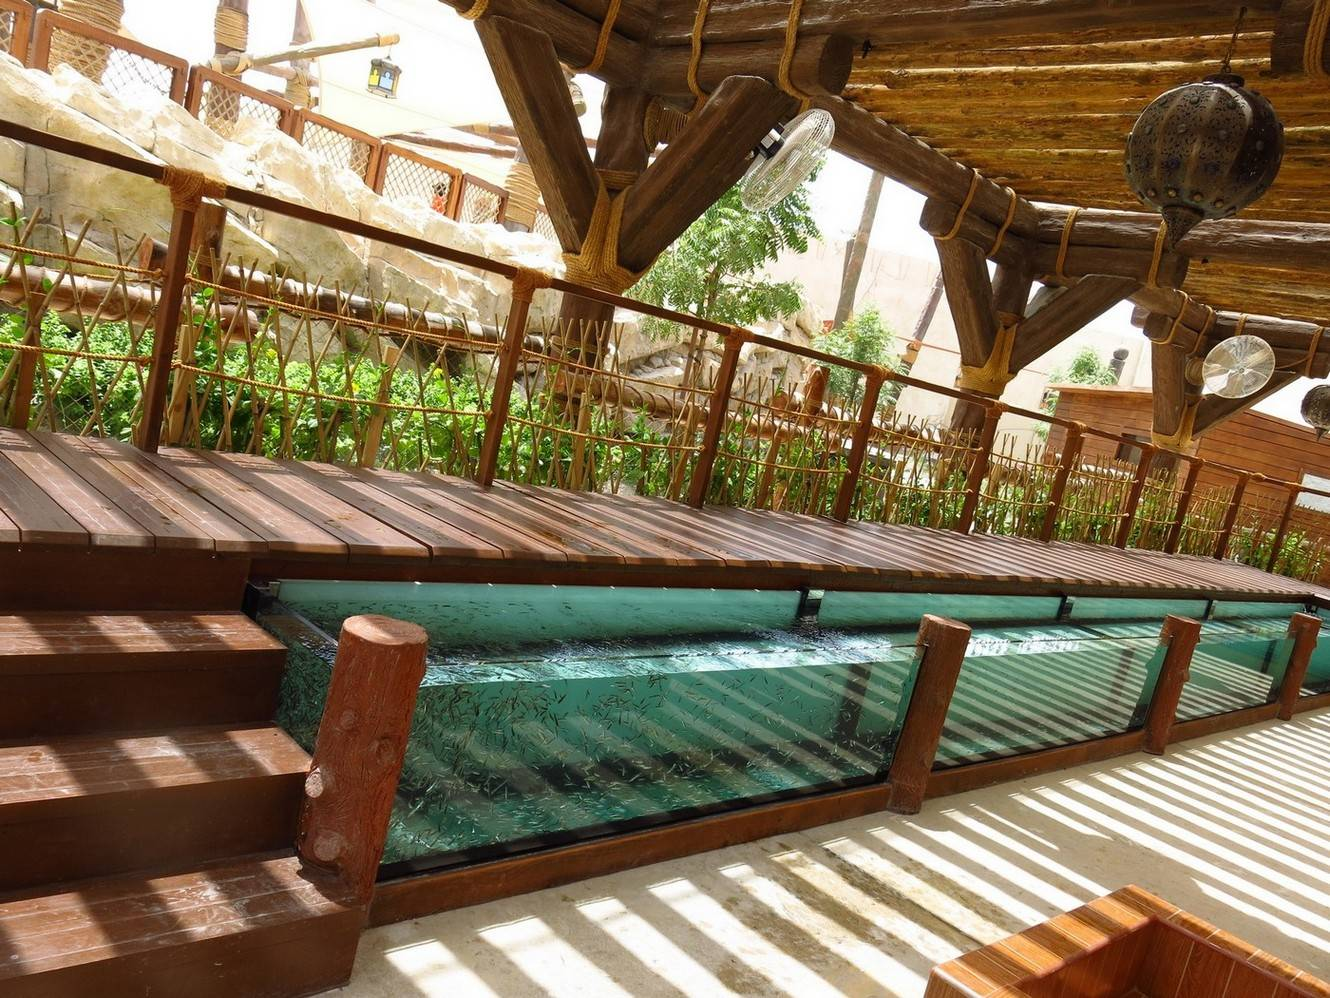 Abu dhabi 39 s first fish spa at yas waterworld haute living for Unusual pond fish